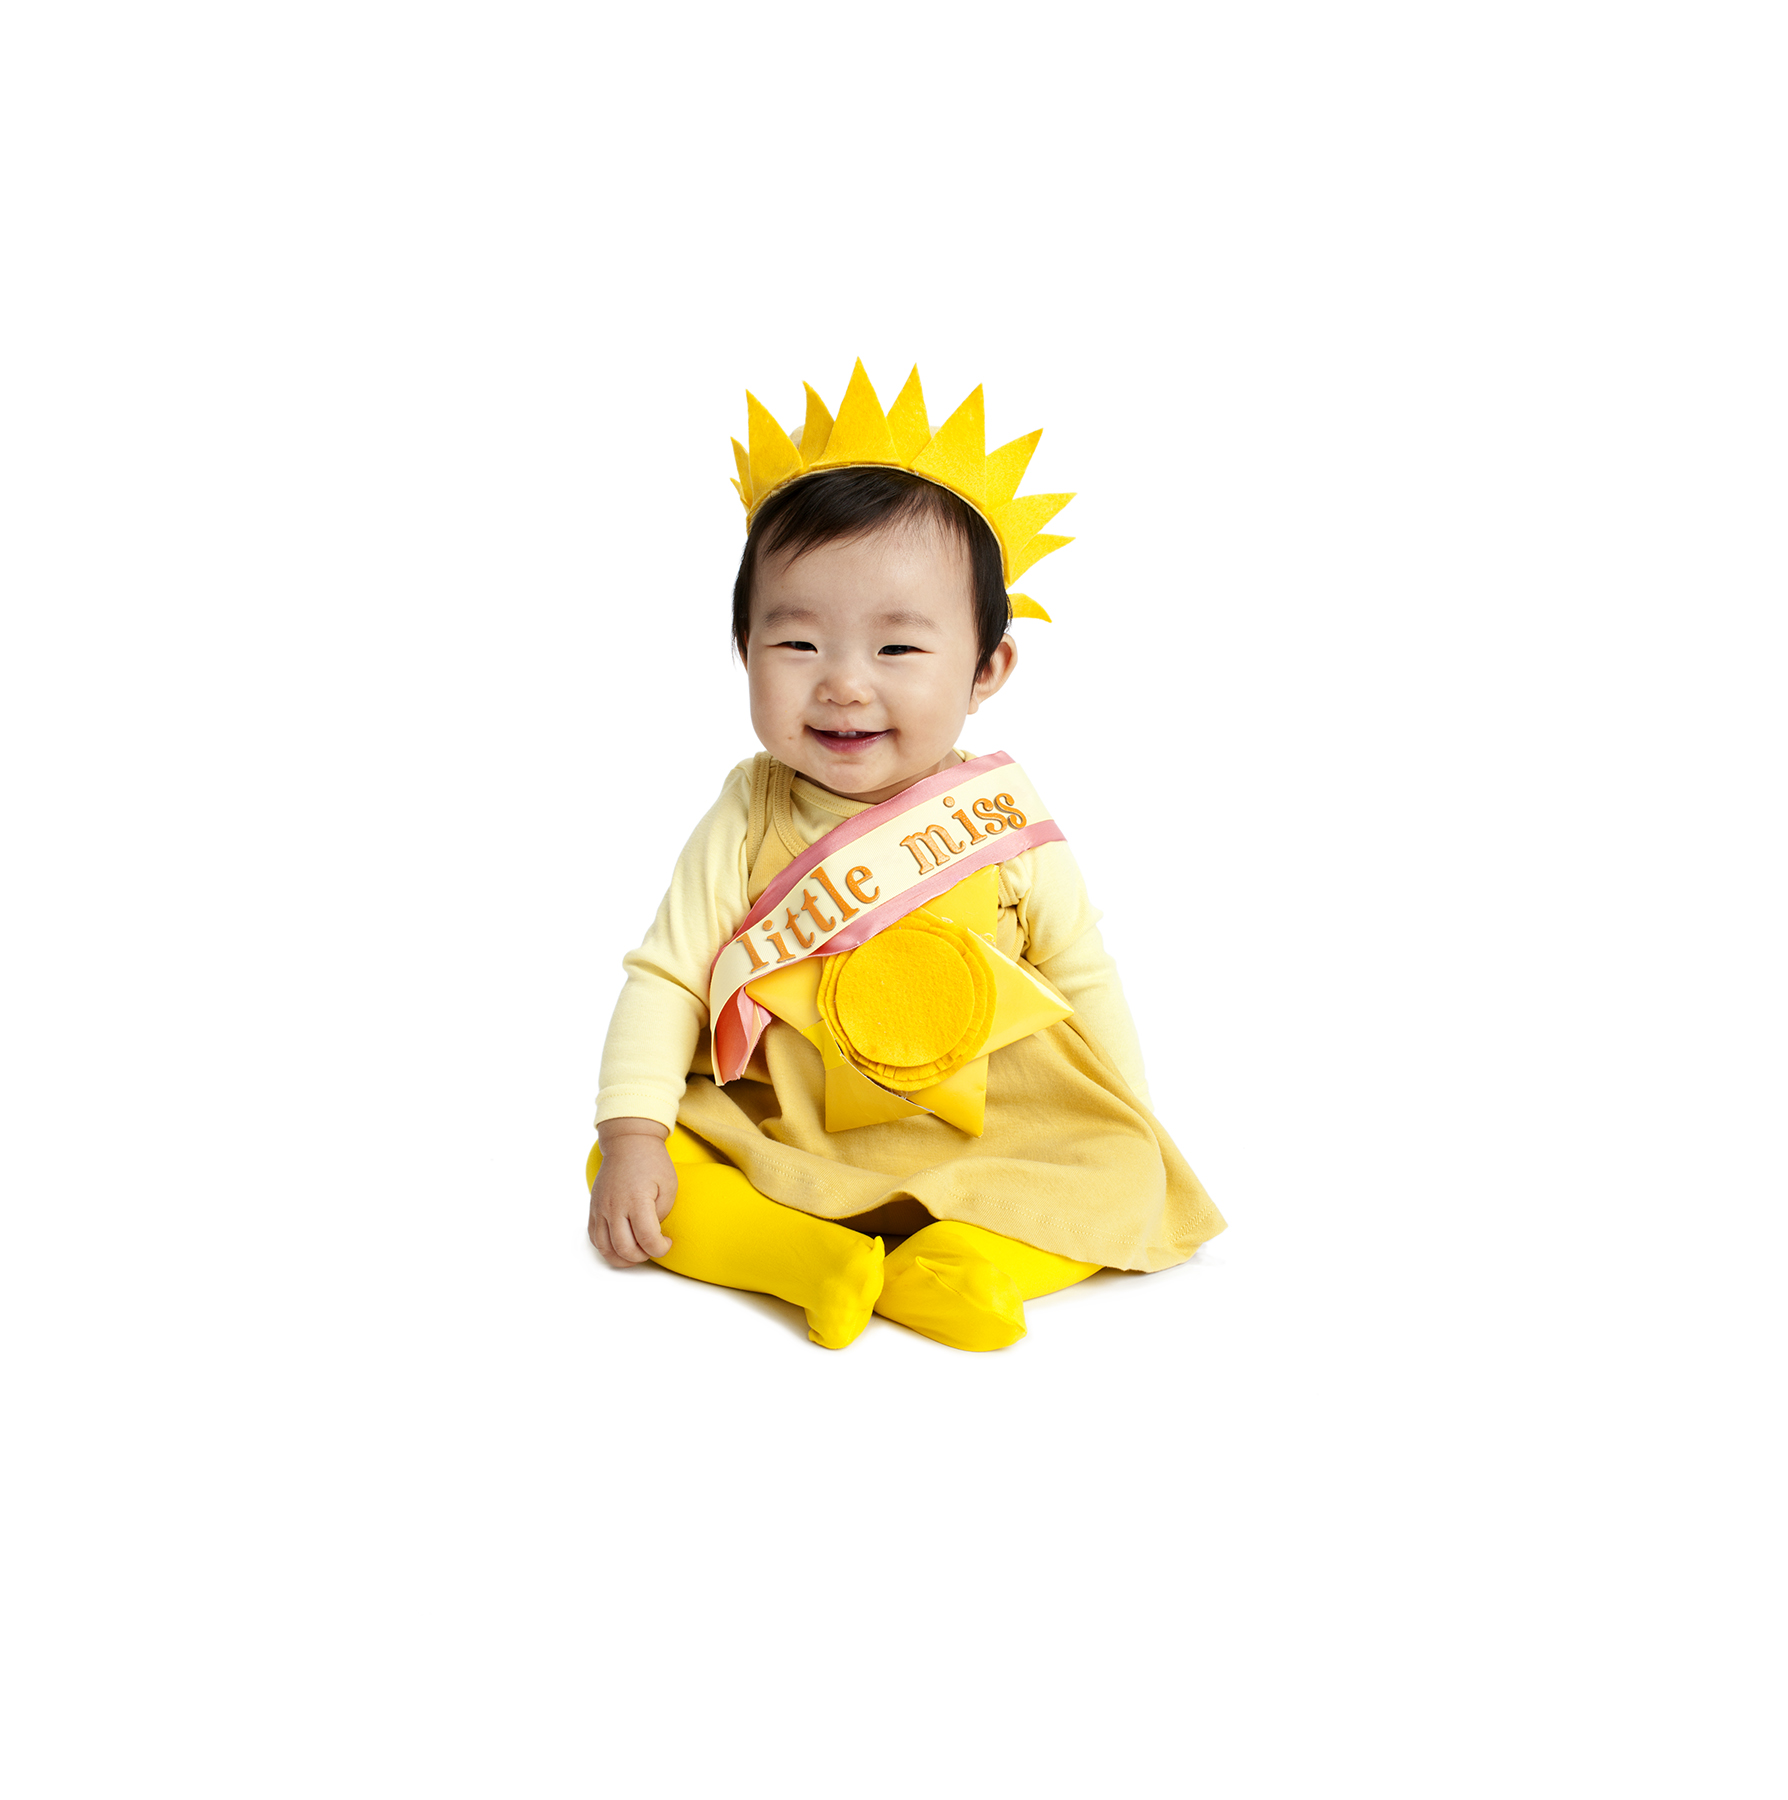 Little Miss Sunshine. Little miss sunshine costume